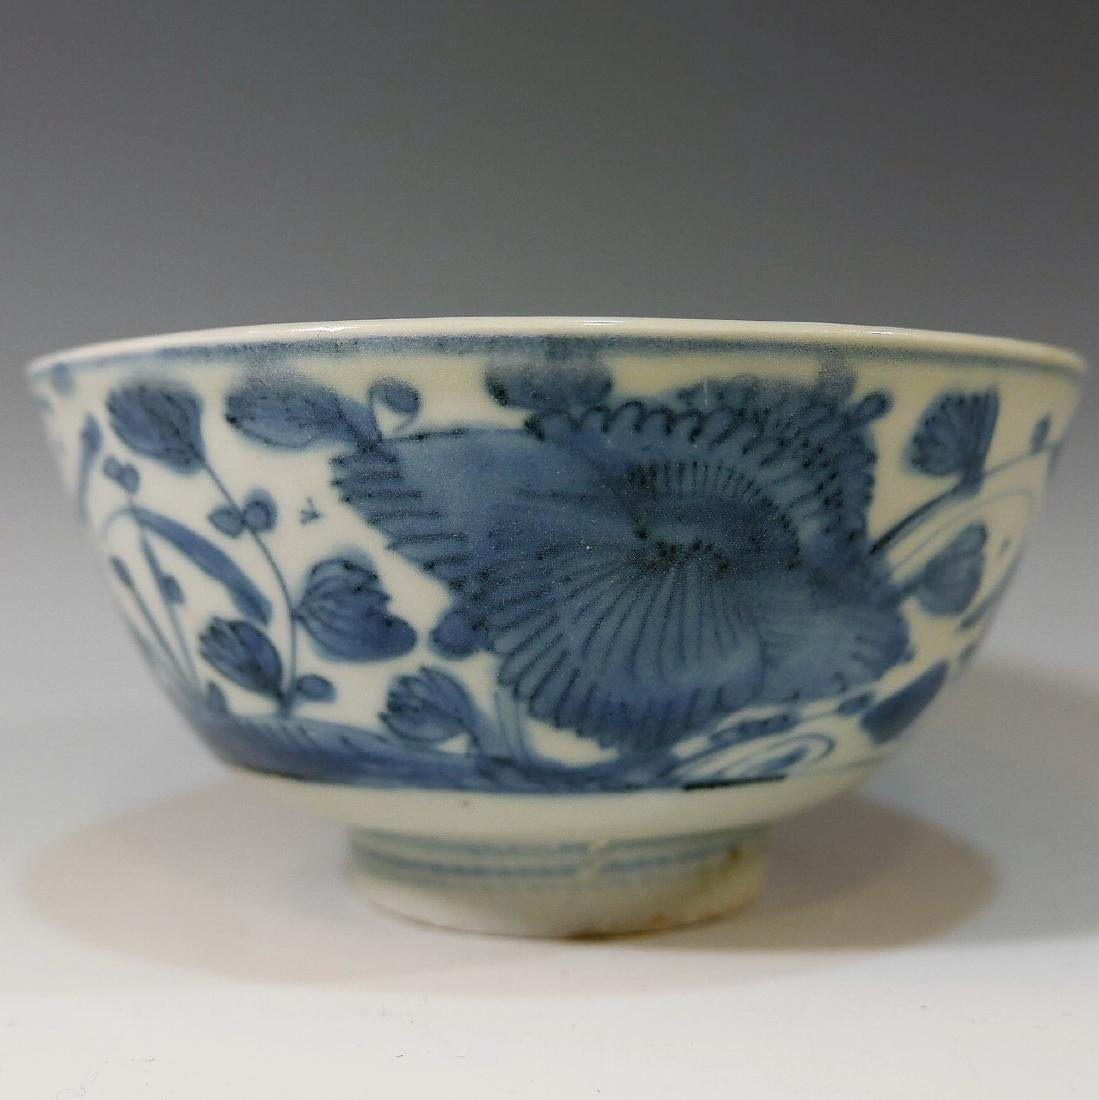 CHINESE ANTIQUE BLUE WHITE PORCELAIN BOWL - MING